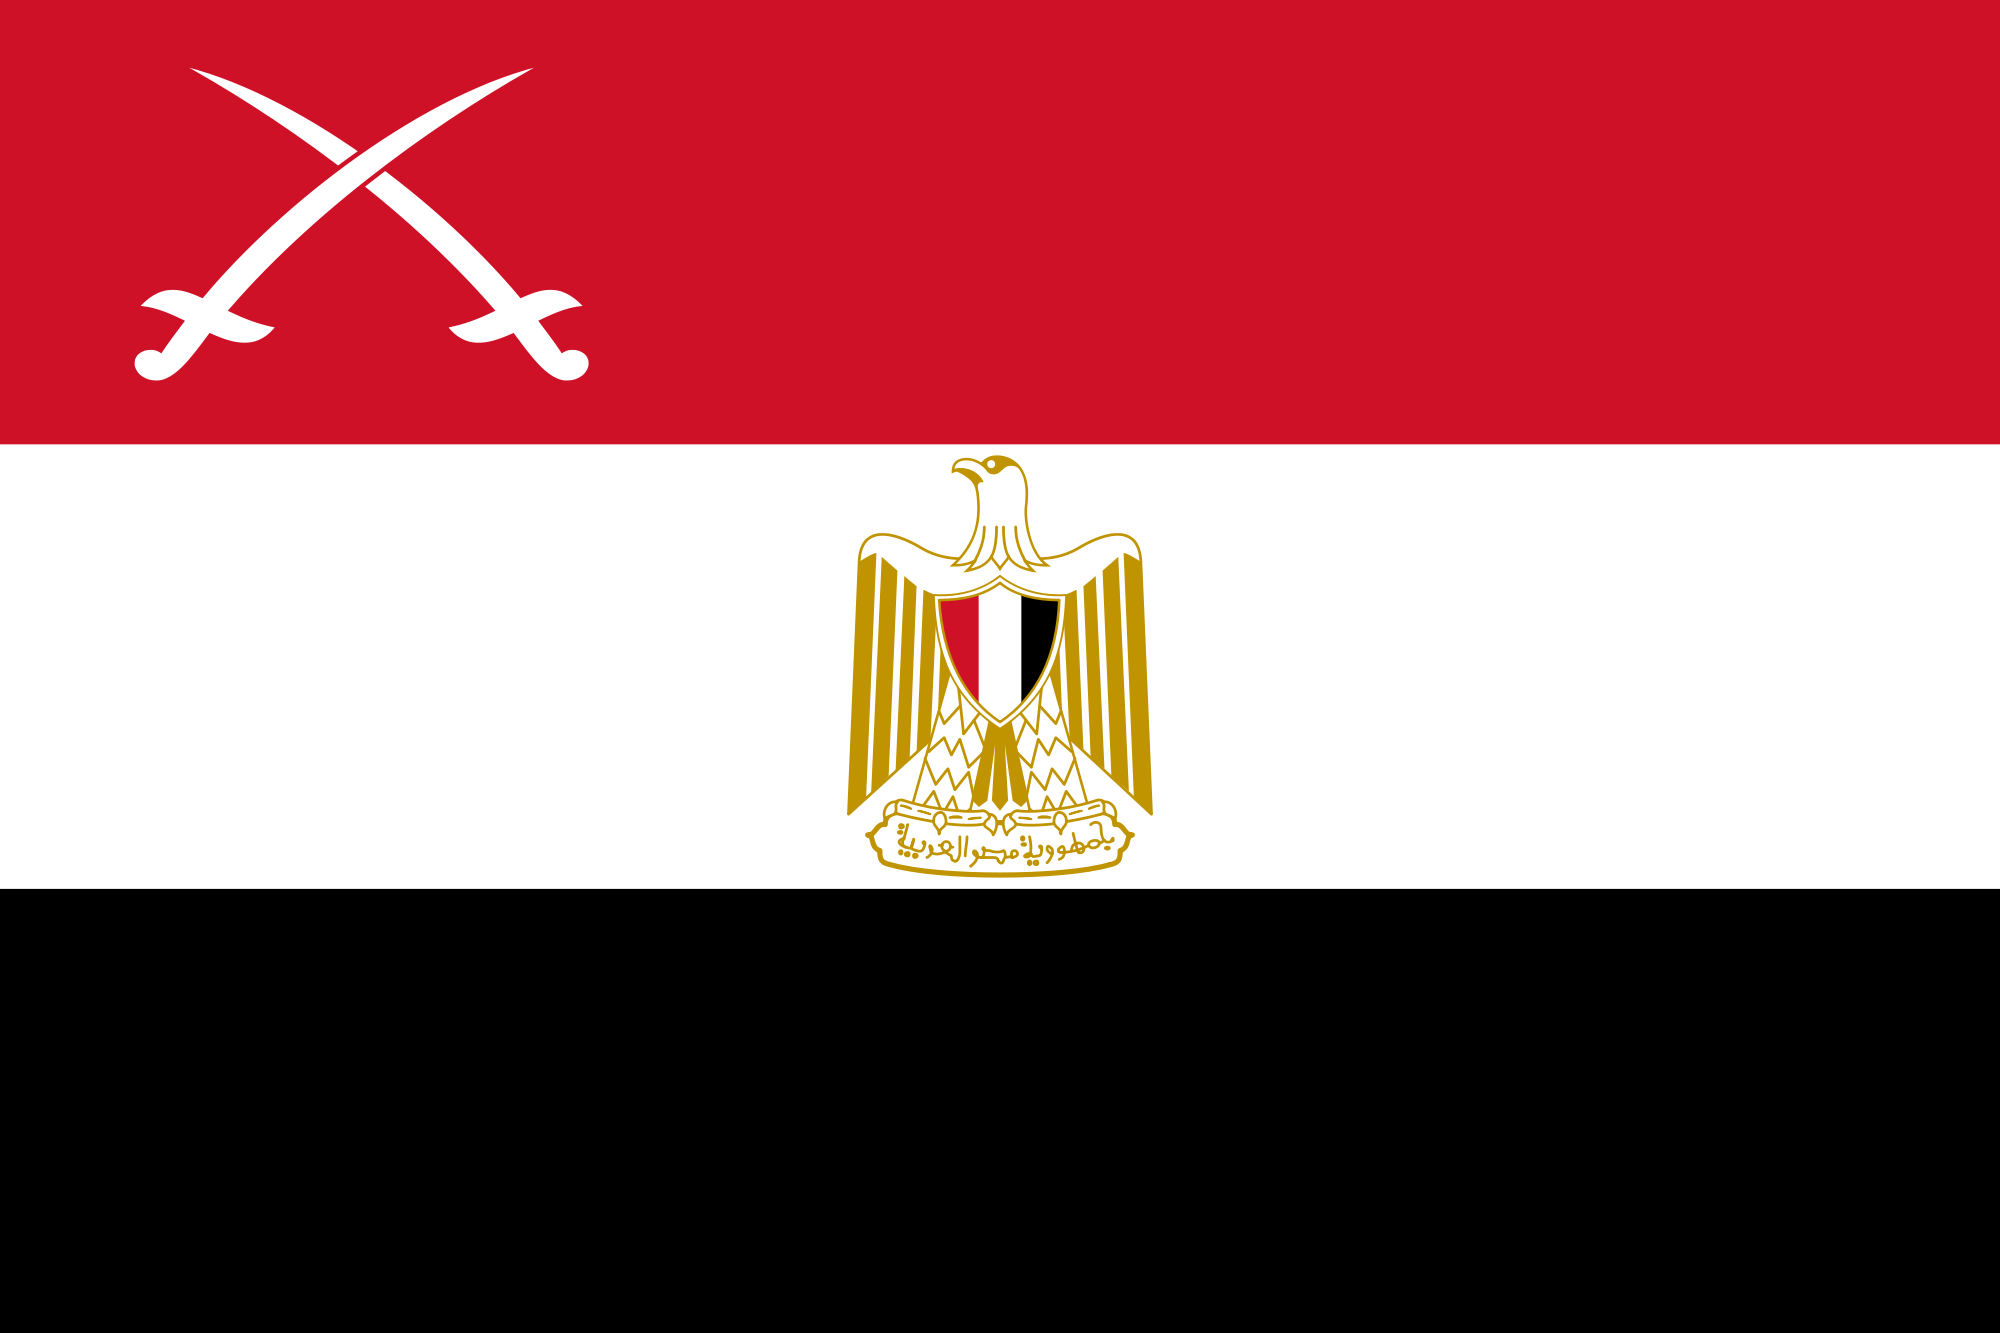 Egypt (War flag)